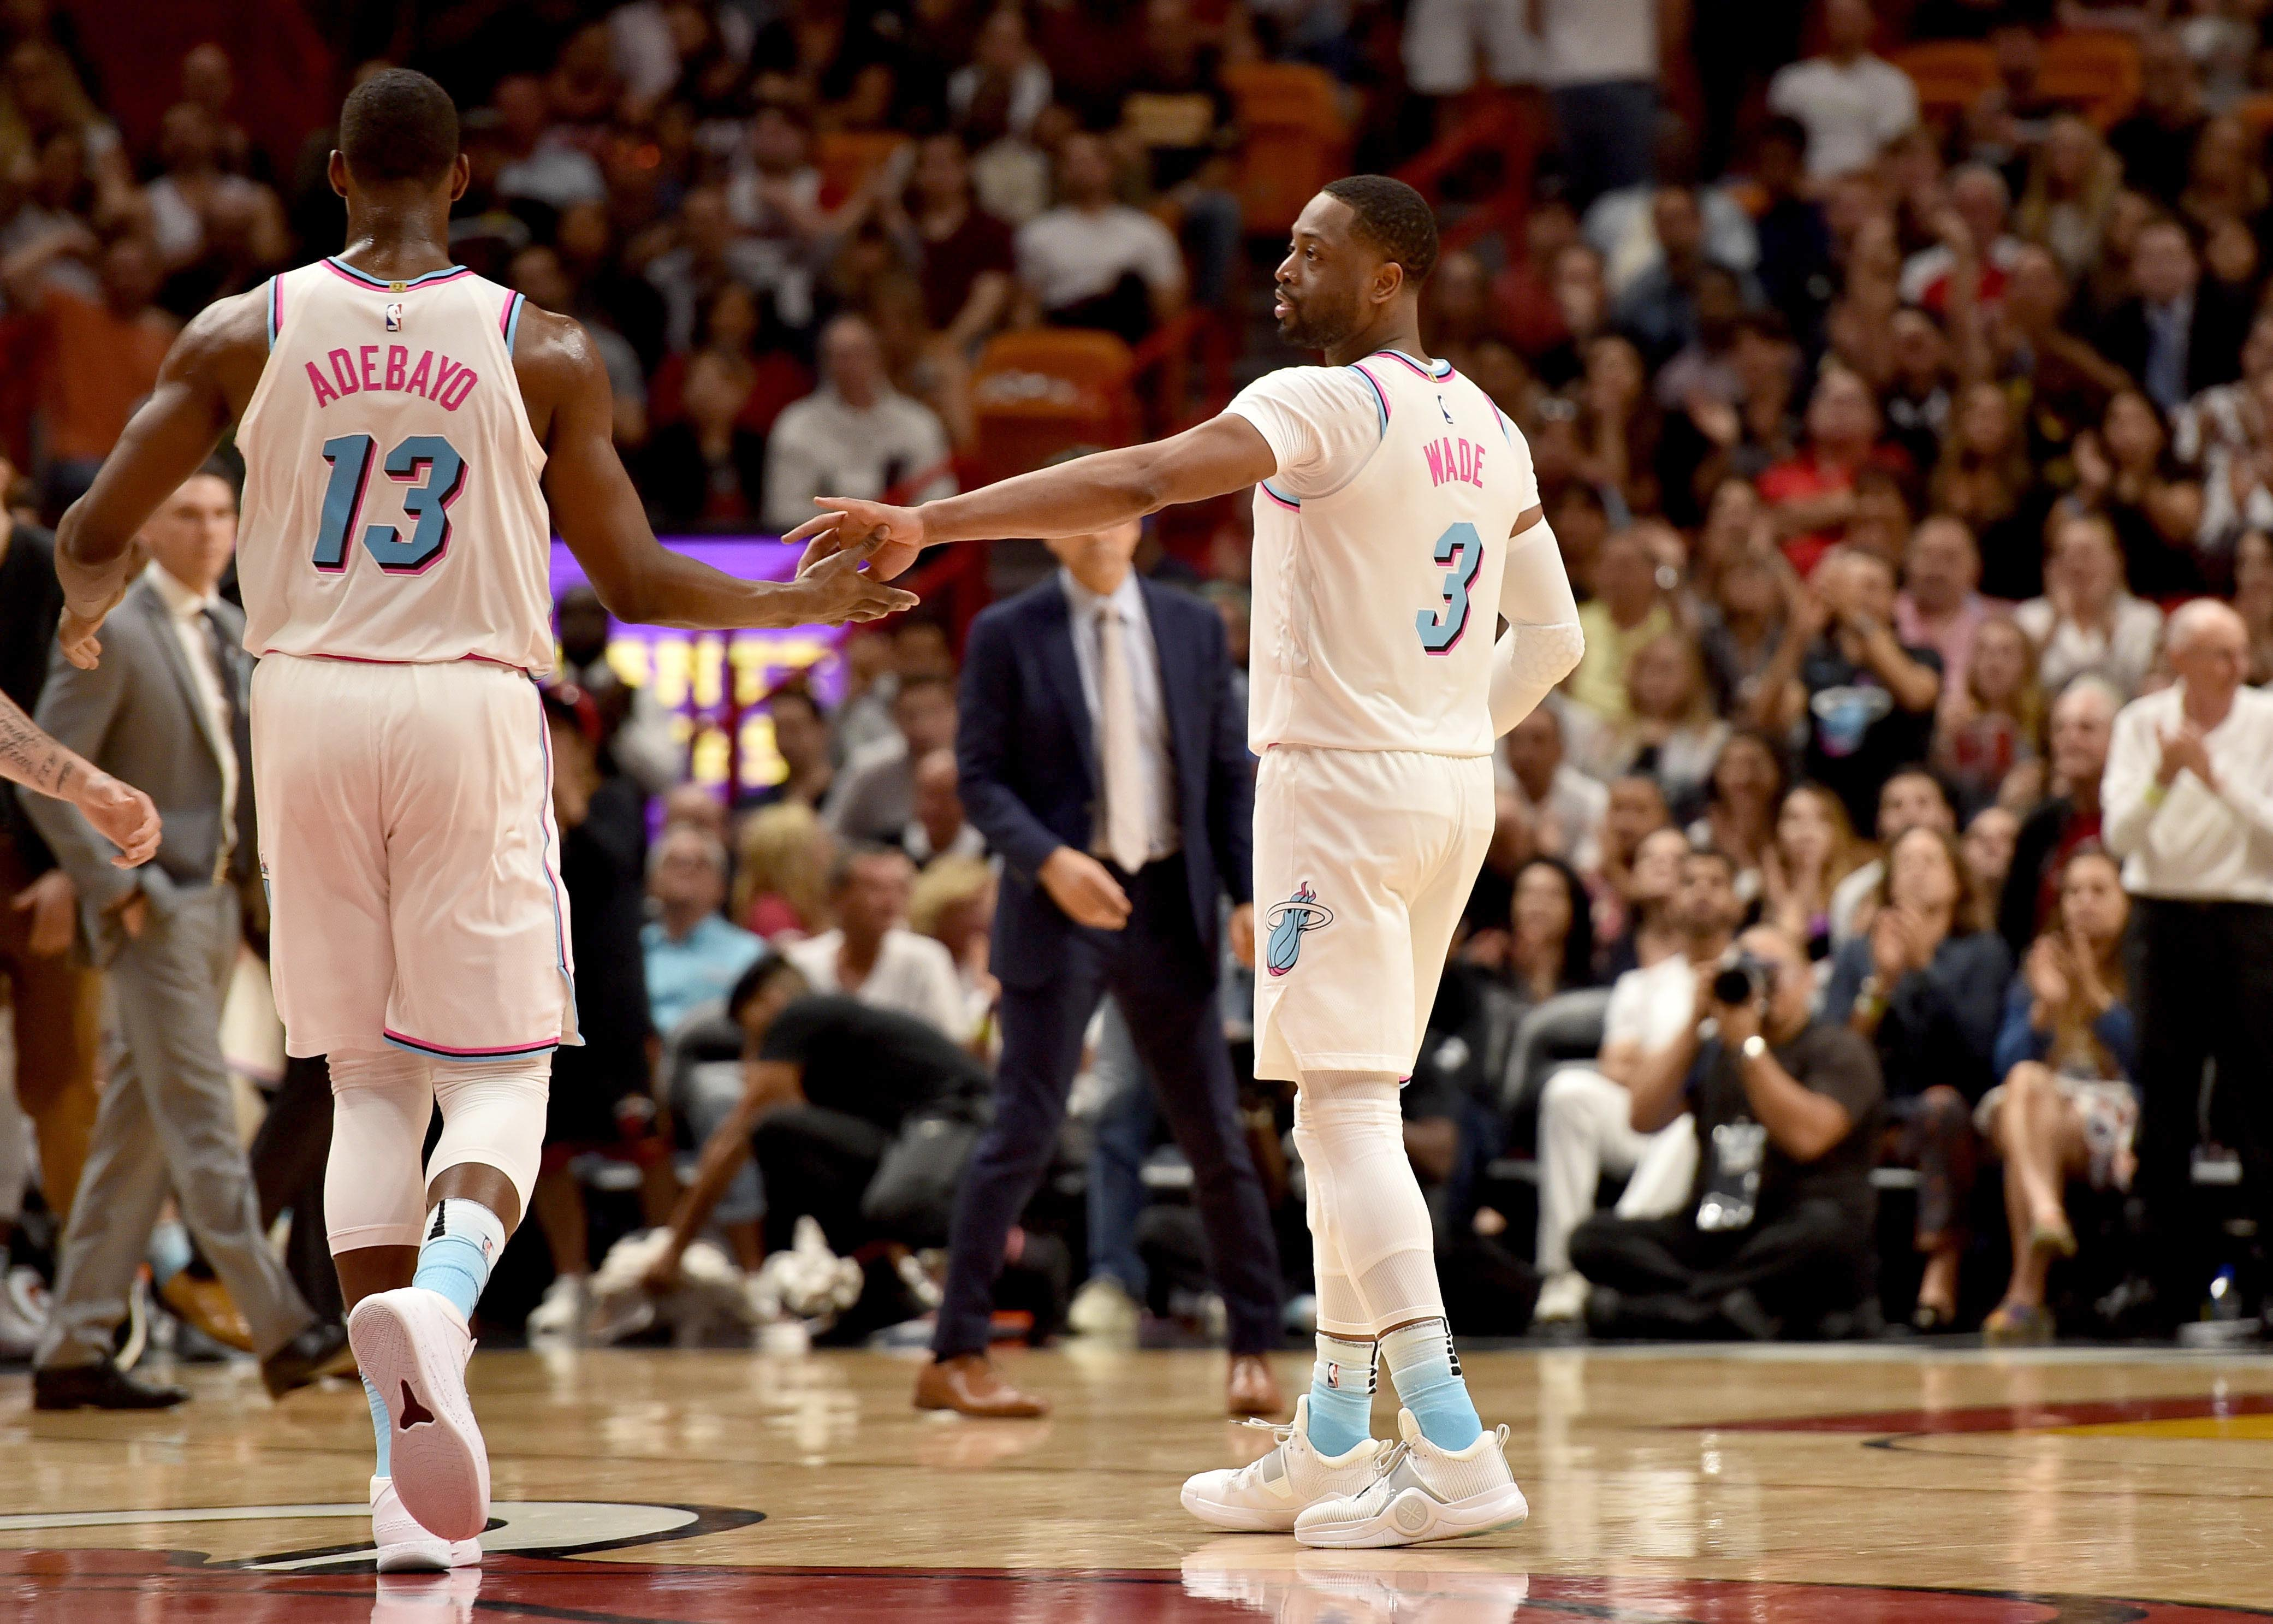 """Bam Adebayo Will Make Florida His Bitch Today: Miami """"Wade"""" County Is Back In South Florida"""